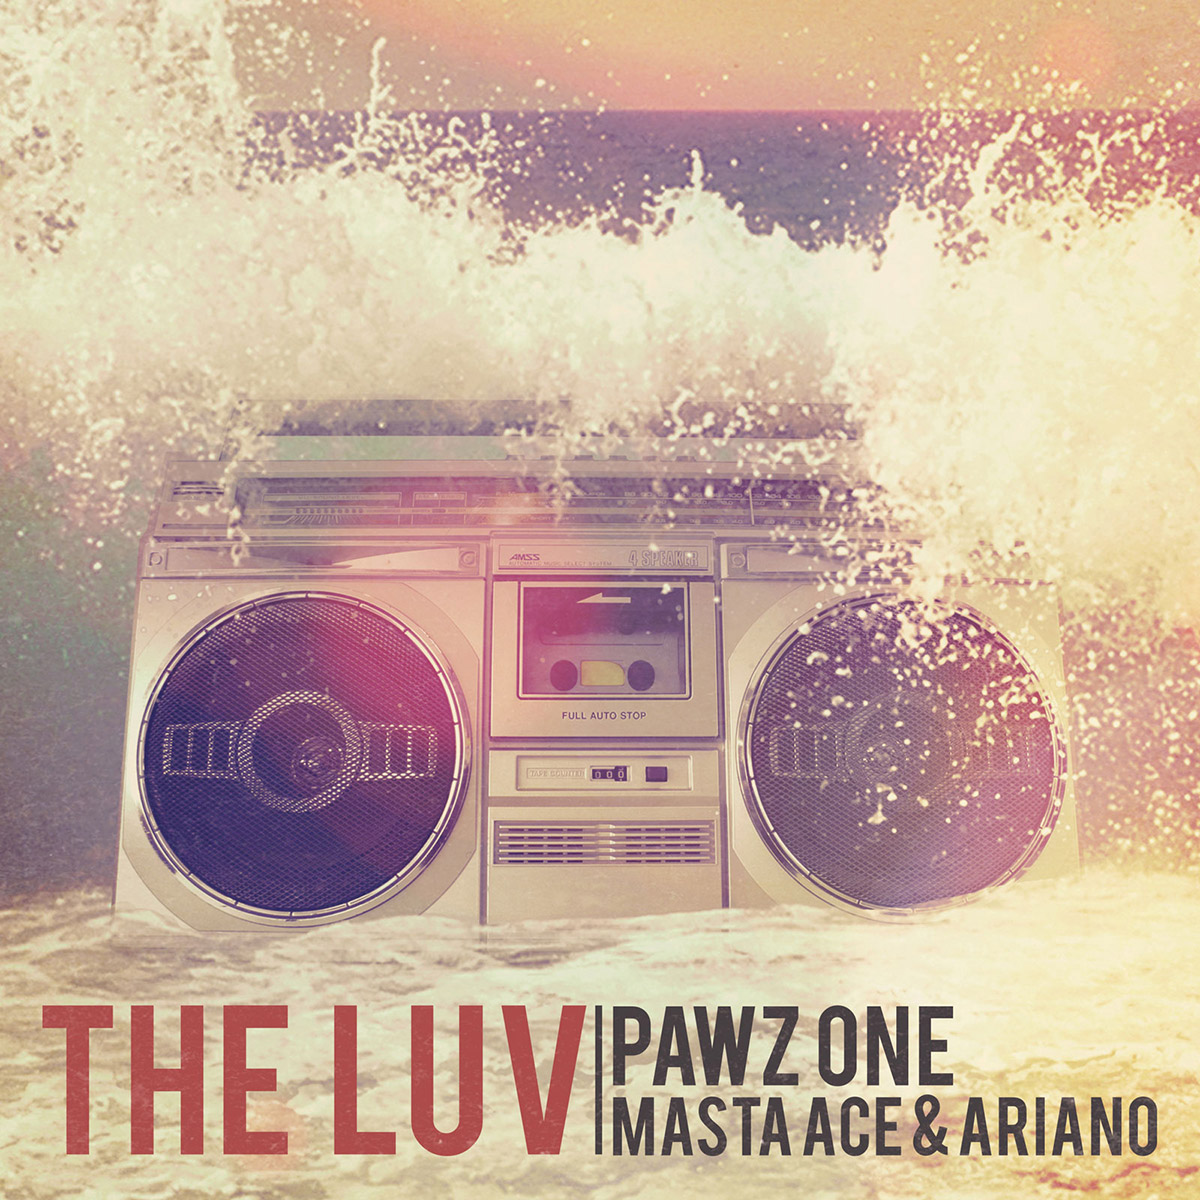 Pawz One - The Luv [Remix]